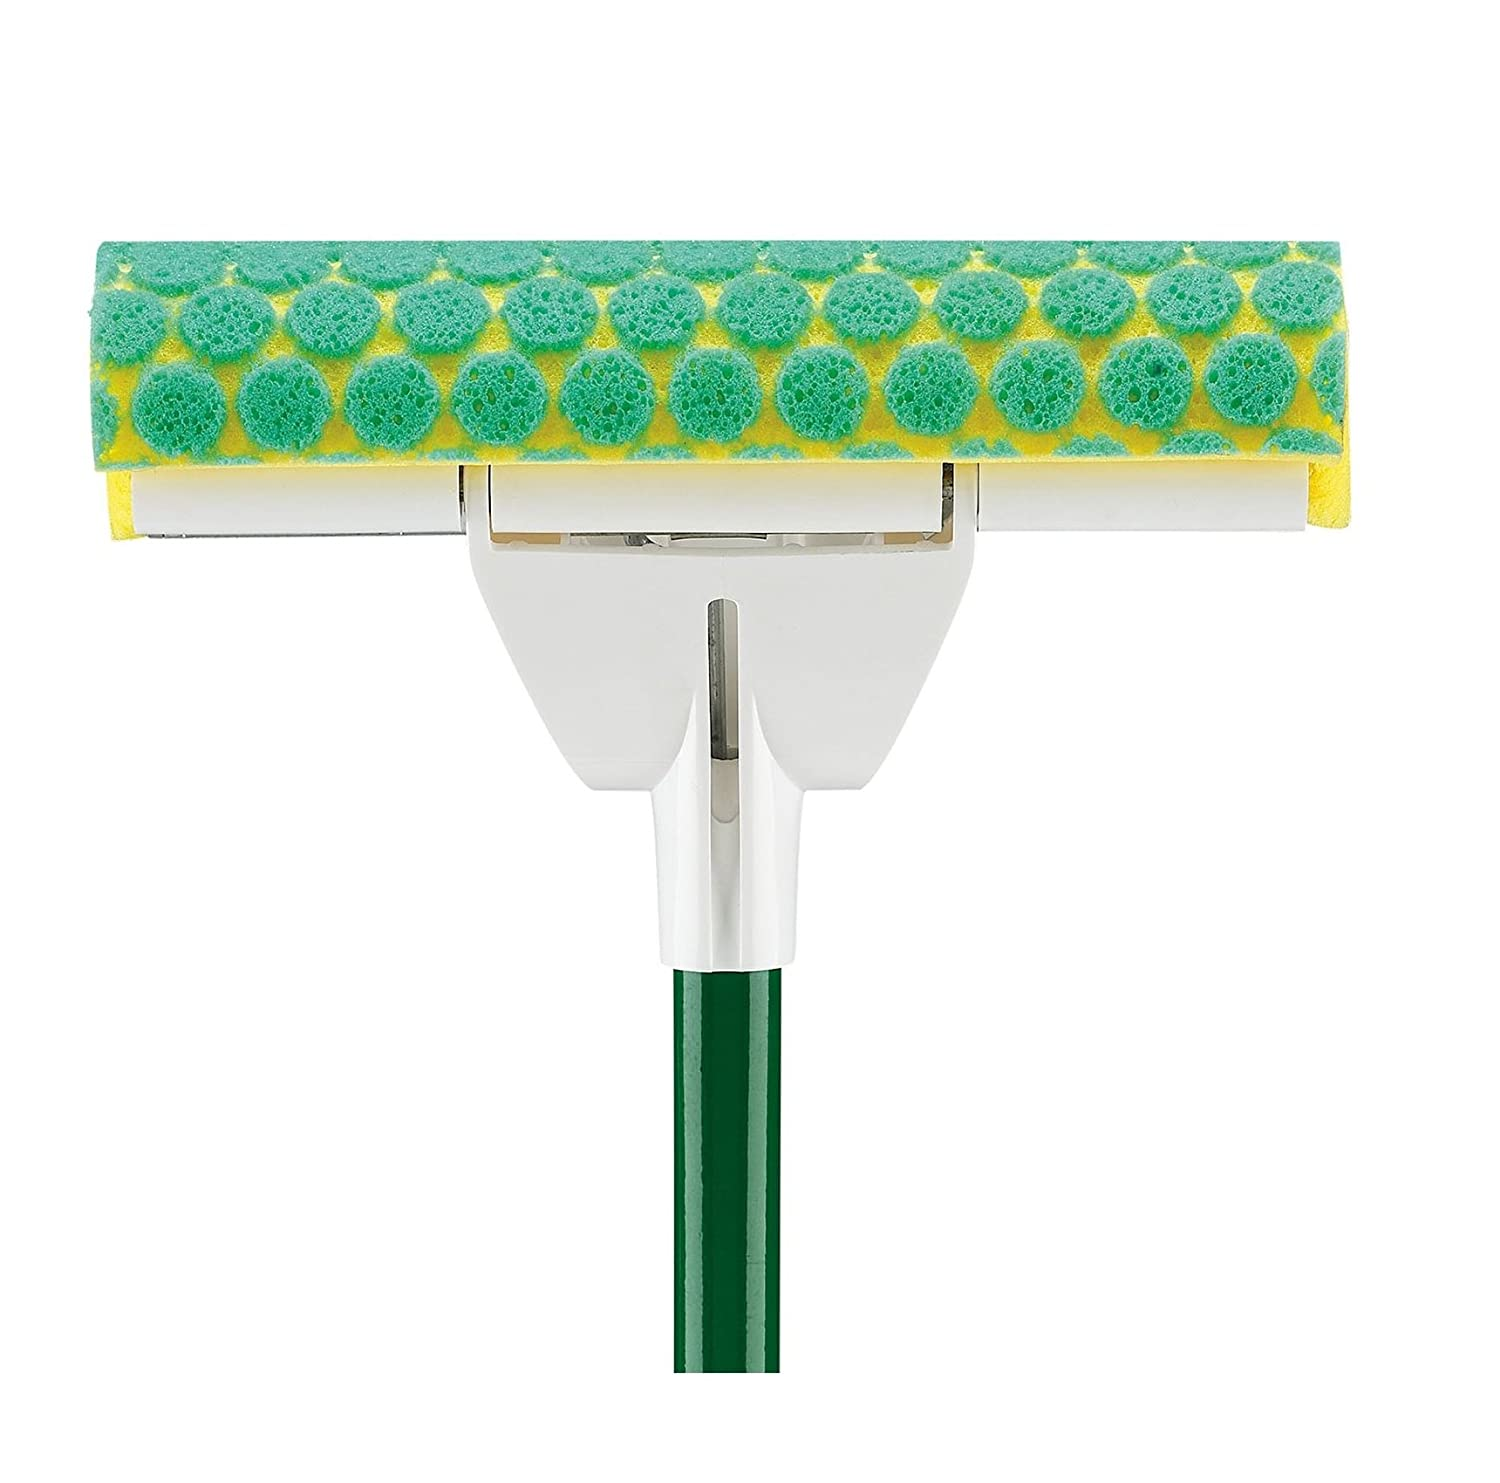 Libman Nitty Gritty Mophead Refill - 10